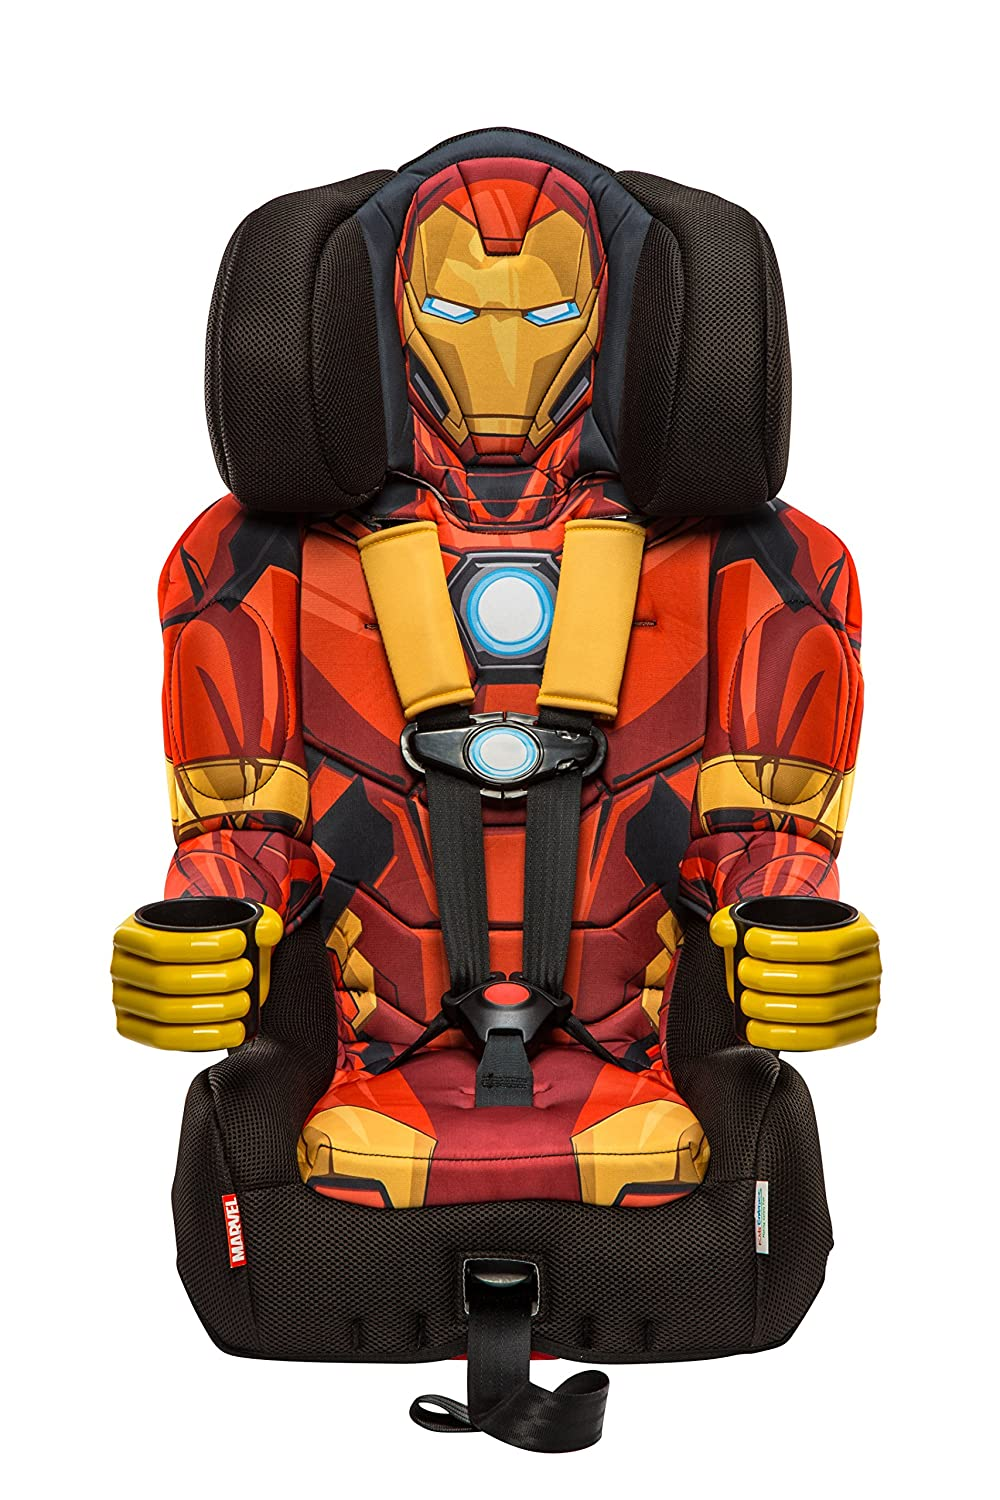 KidsEmbrace Friendship Combination Booster-Iron Man, Red, Gold 3001RONCAN